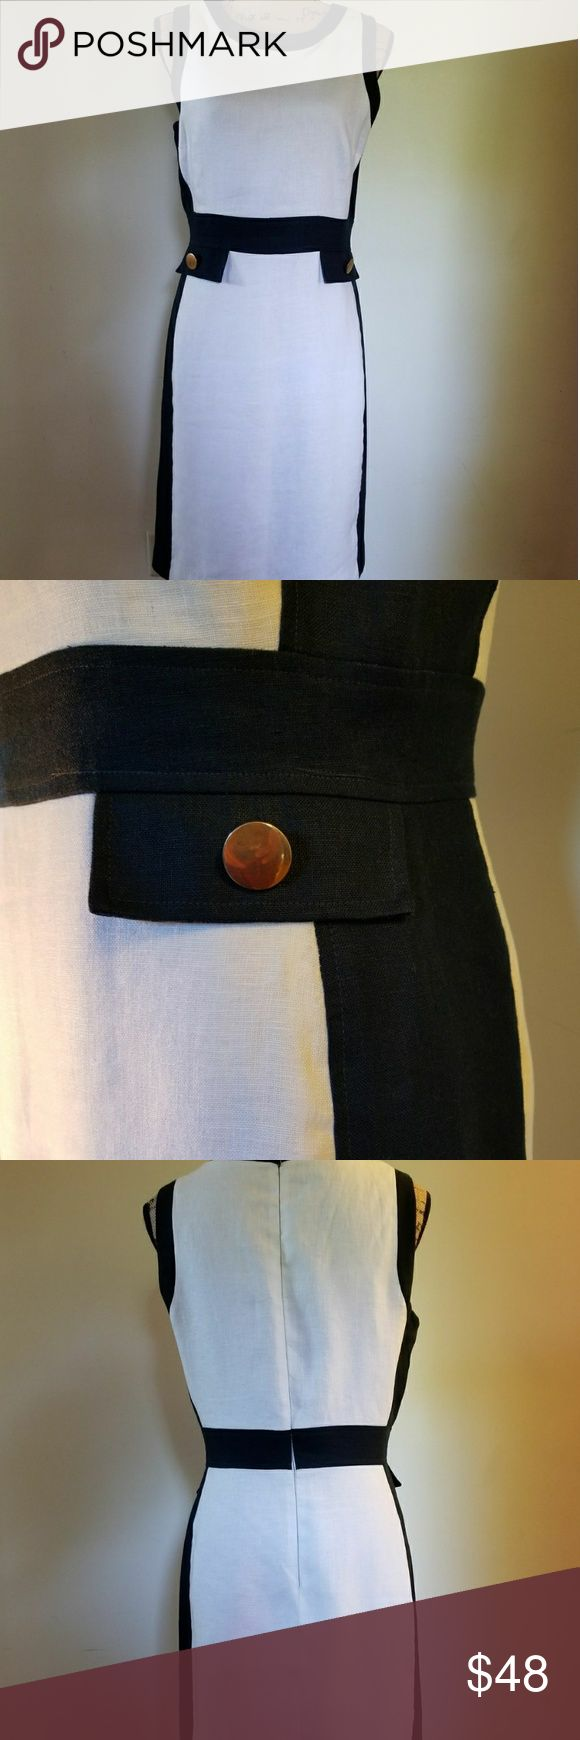 Morgan Mcfeeters dress White and navy blue dress from Lord N Taylor  Excellent condition  Perfect for the summer! Morgan Mcfeeters Dresses